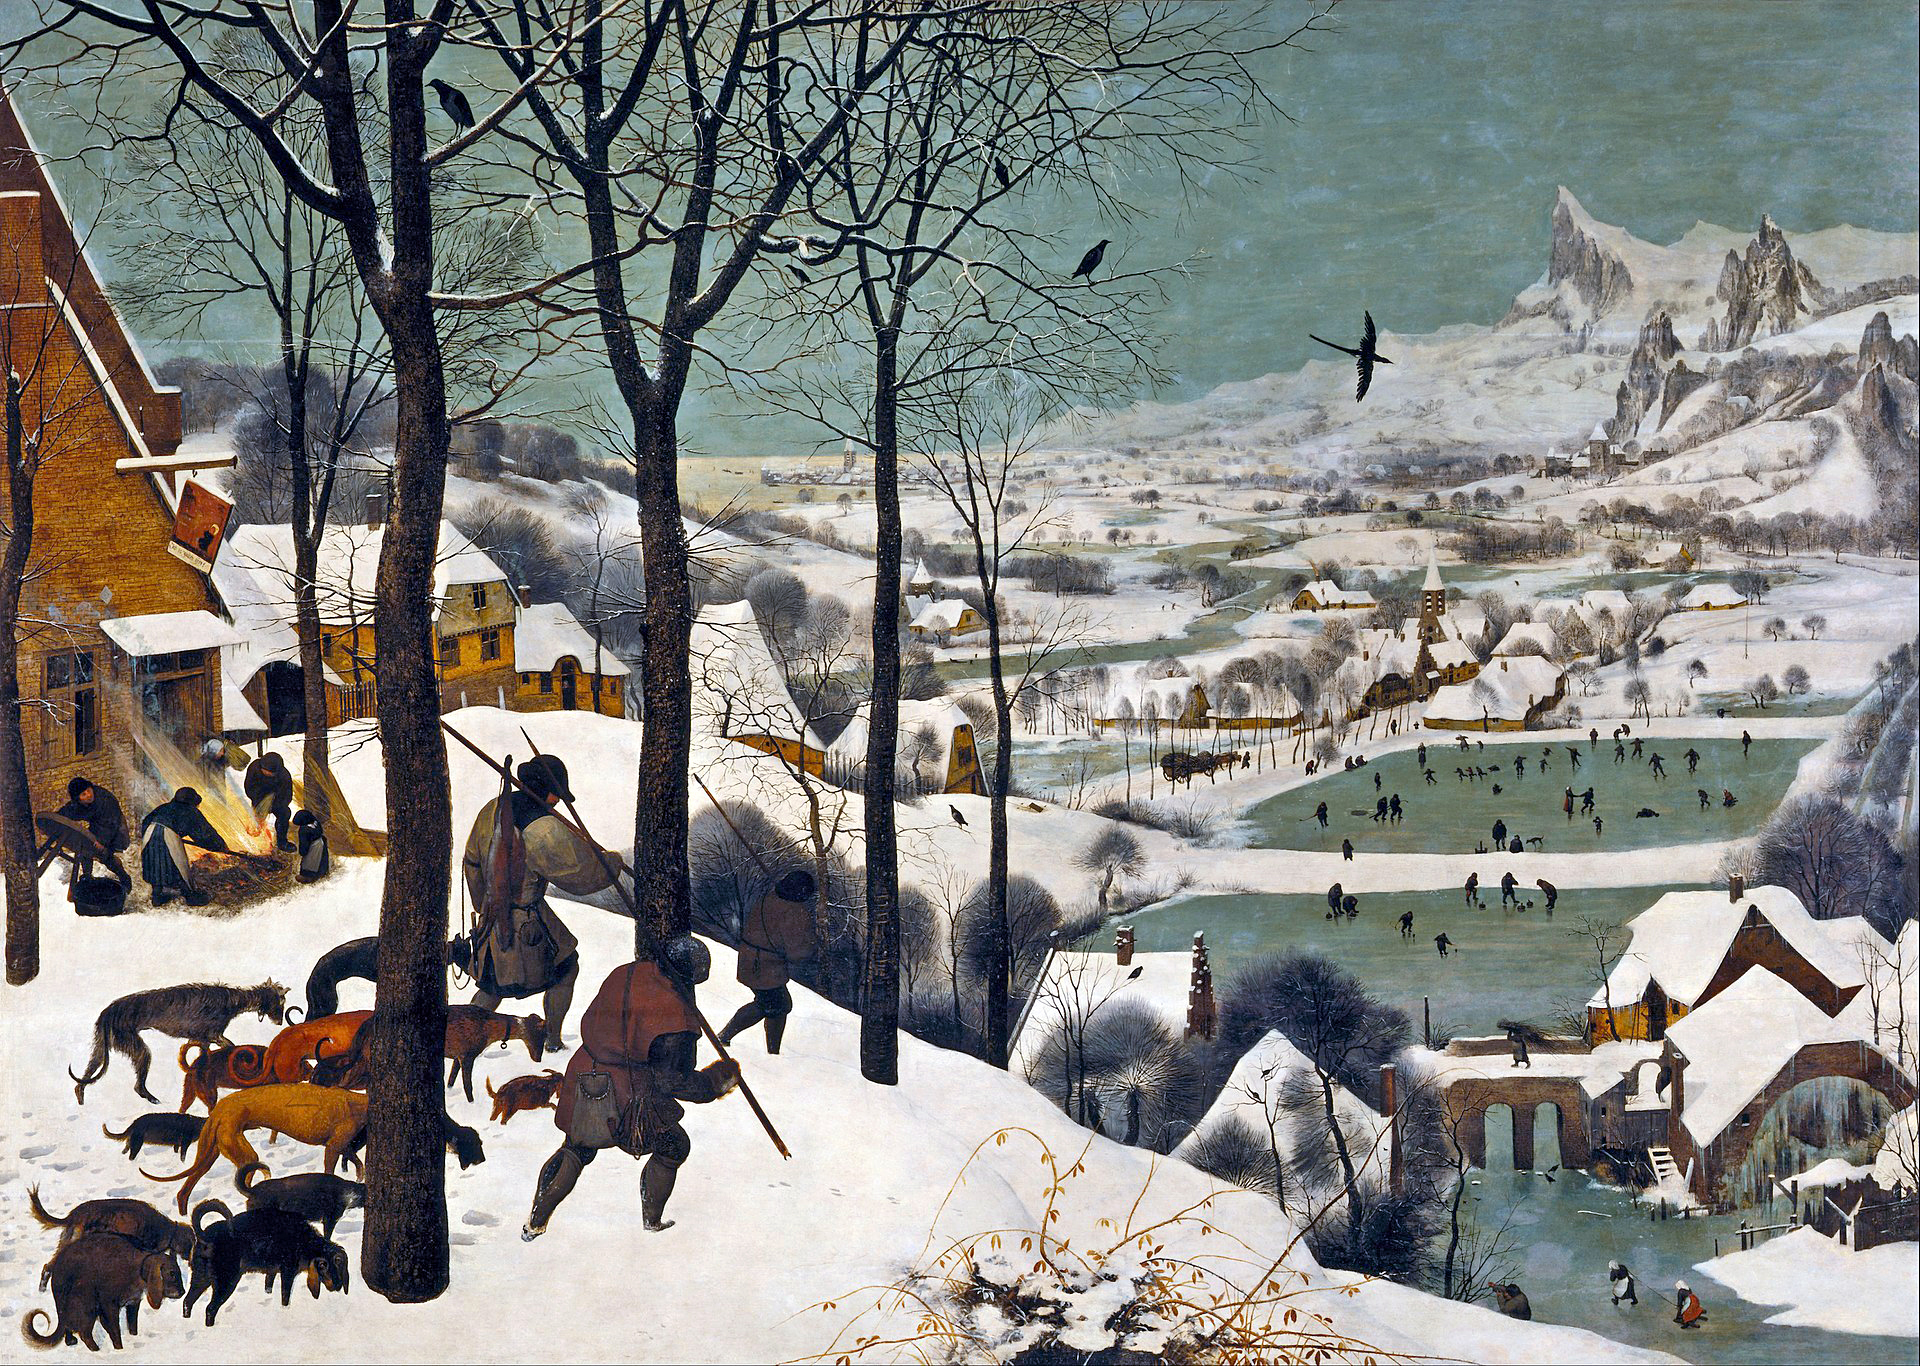 https://media.thisisgallery.com/wp-content/uploads/2018/12/pieterbruegel_01.jpg